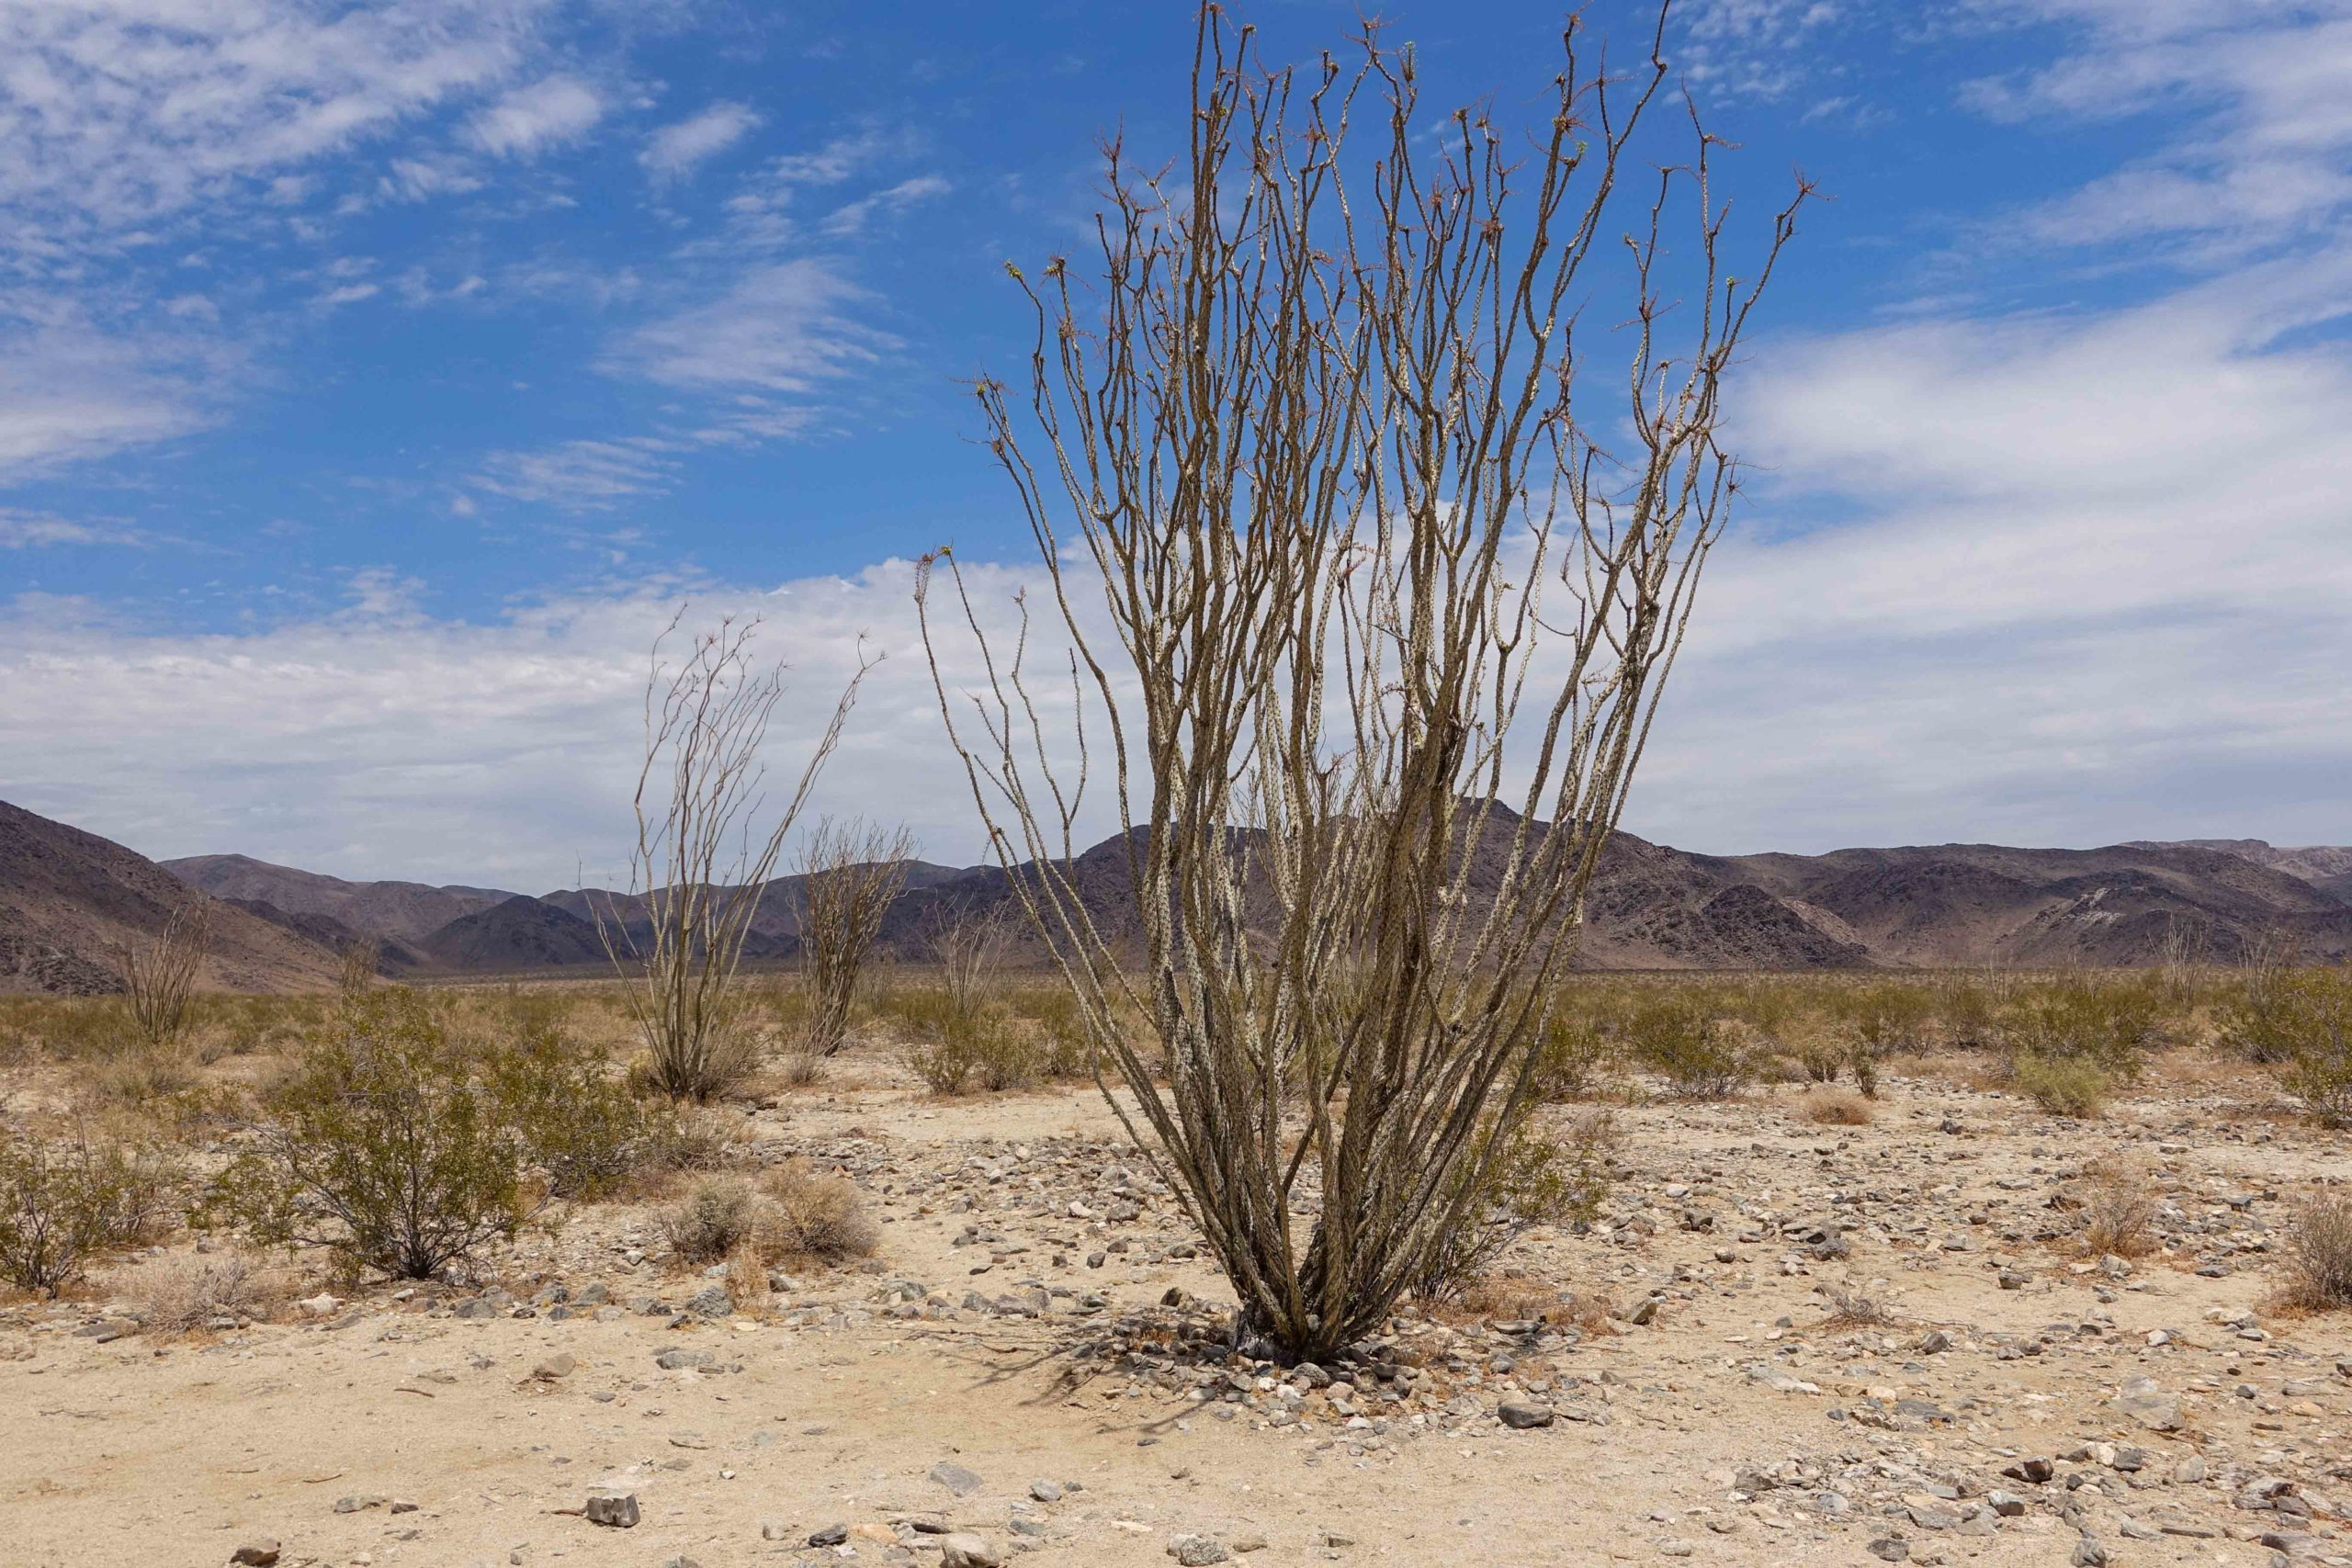 Joshua Tree National Park: Ocotillo Patch